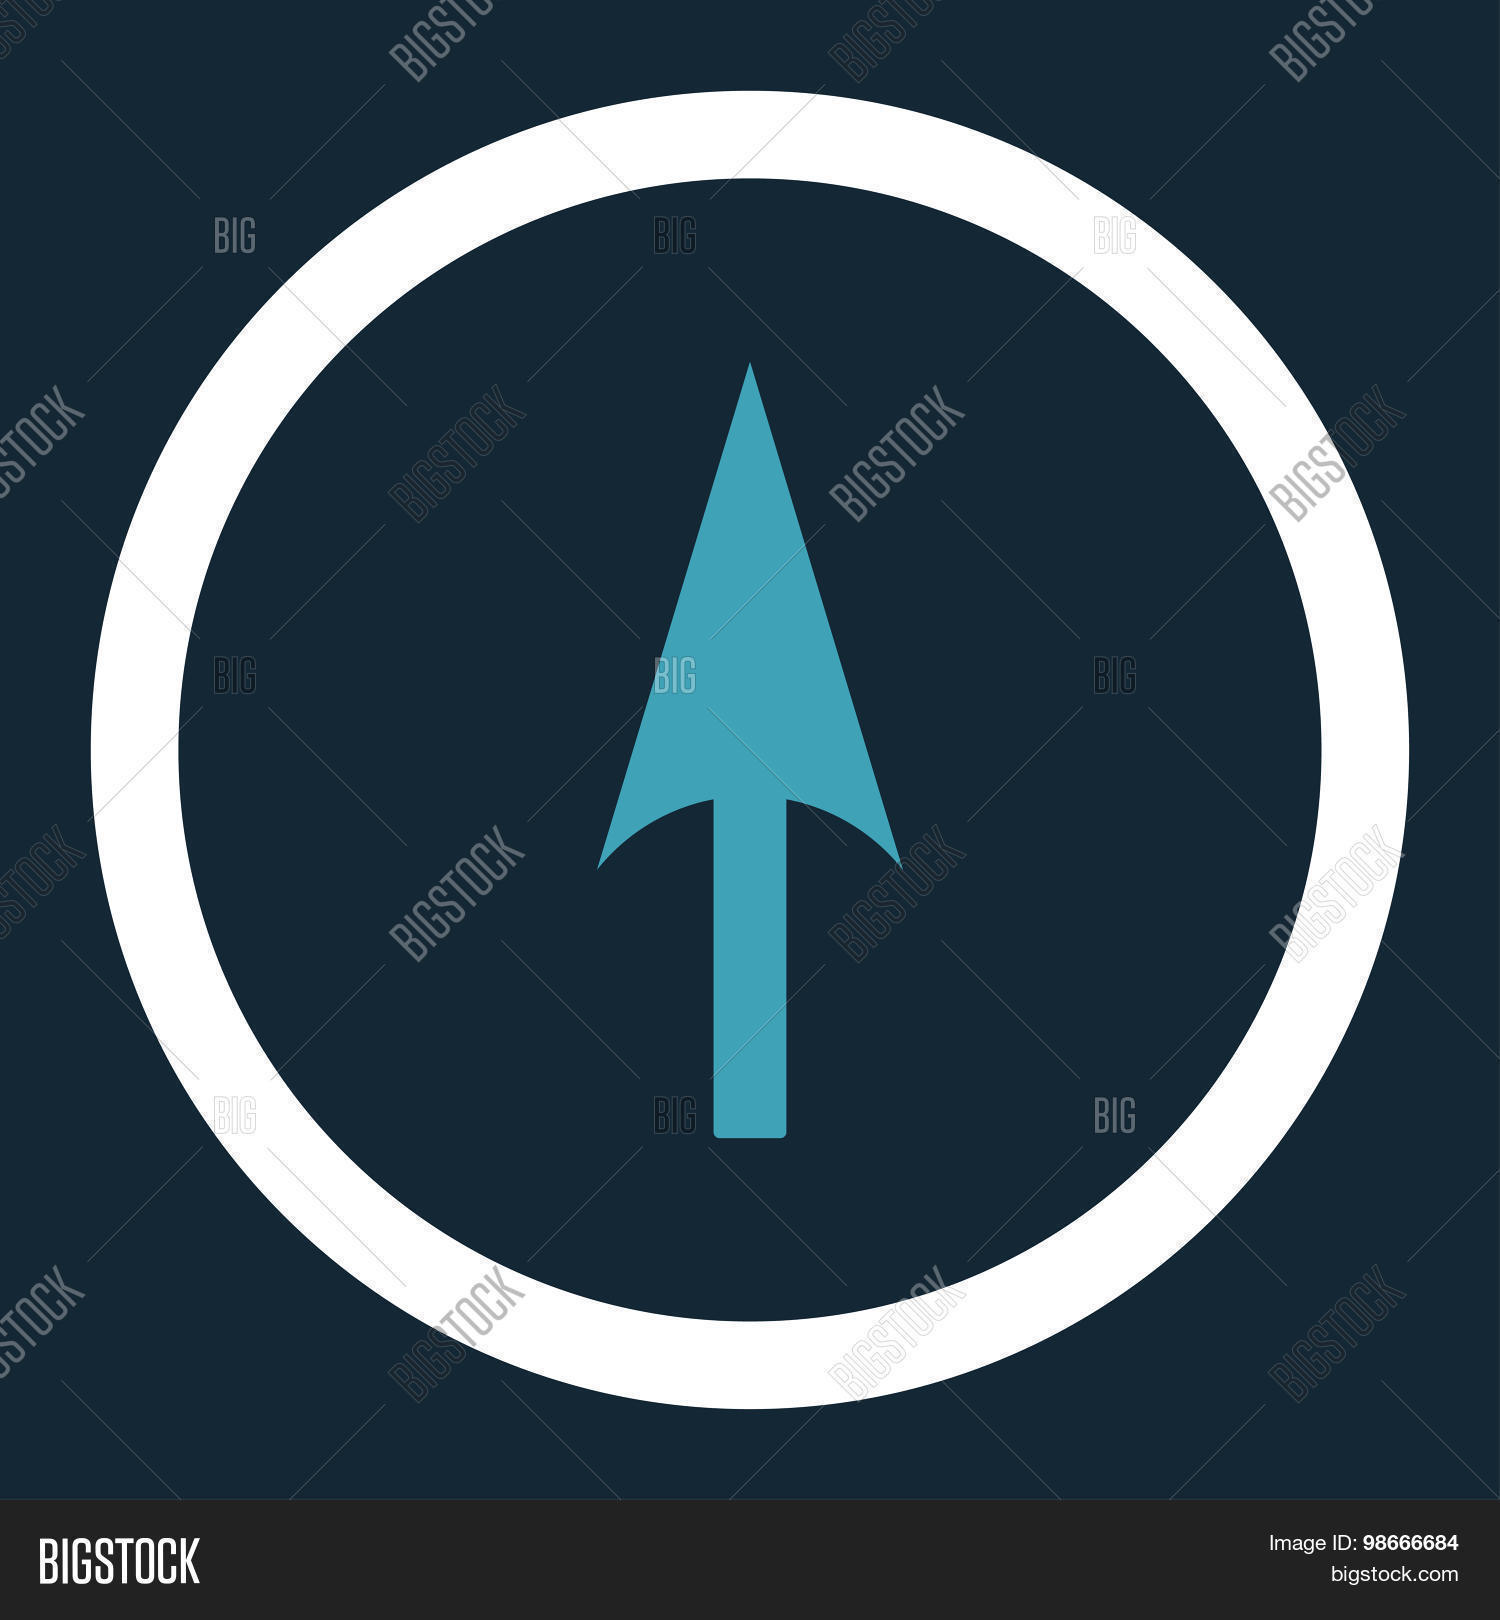 Vector Y Foto Arrow Axis Flat Prueba Gratis Bigstock Line Blue And White Colors Rounded Icon